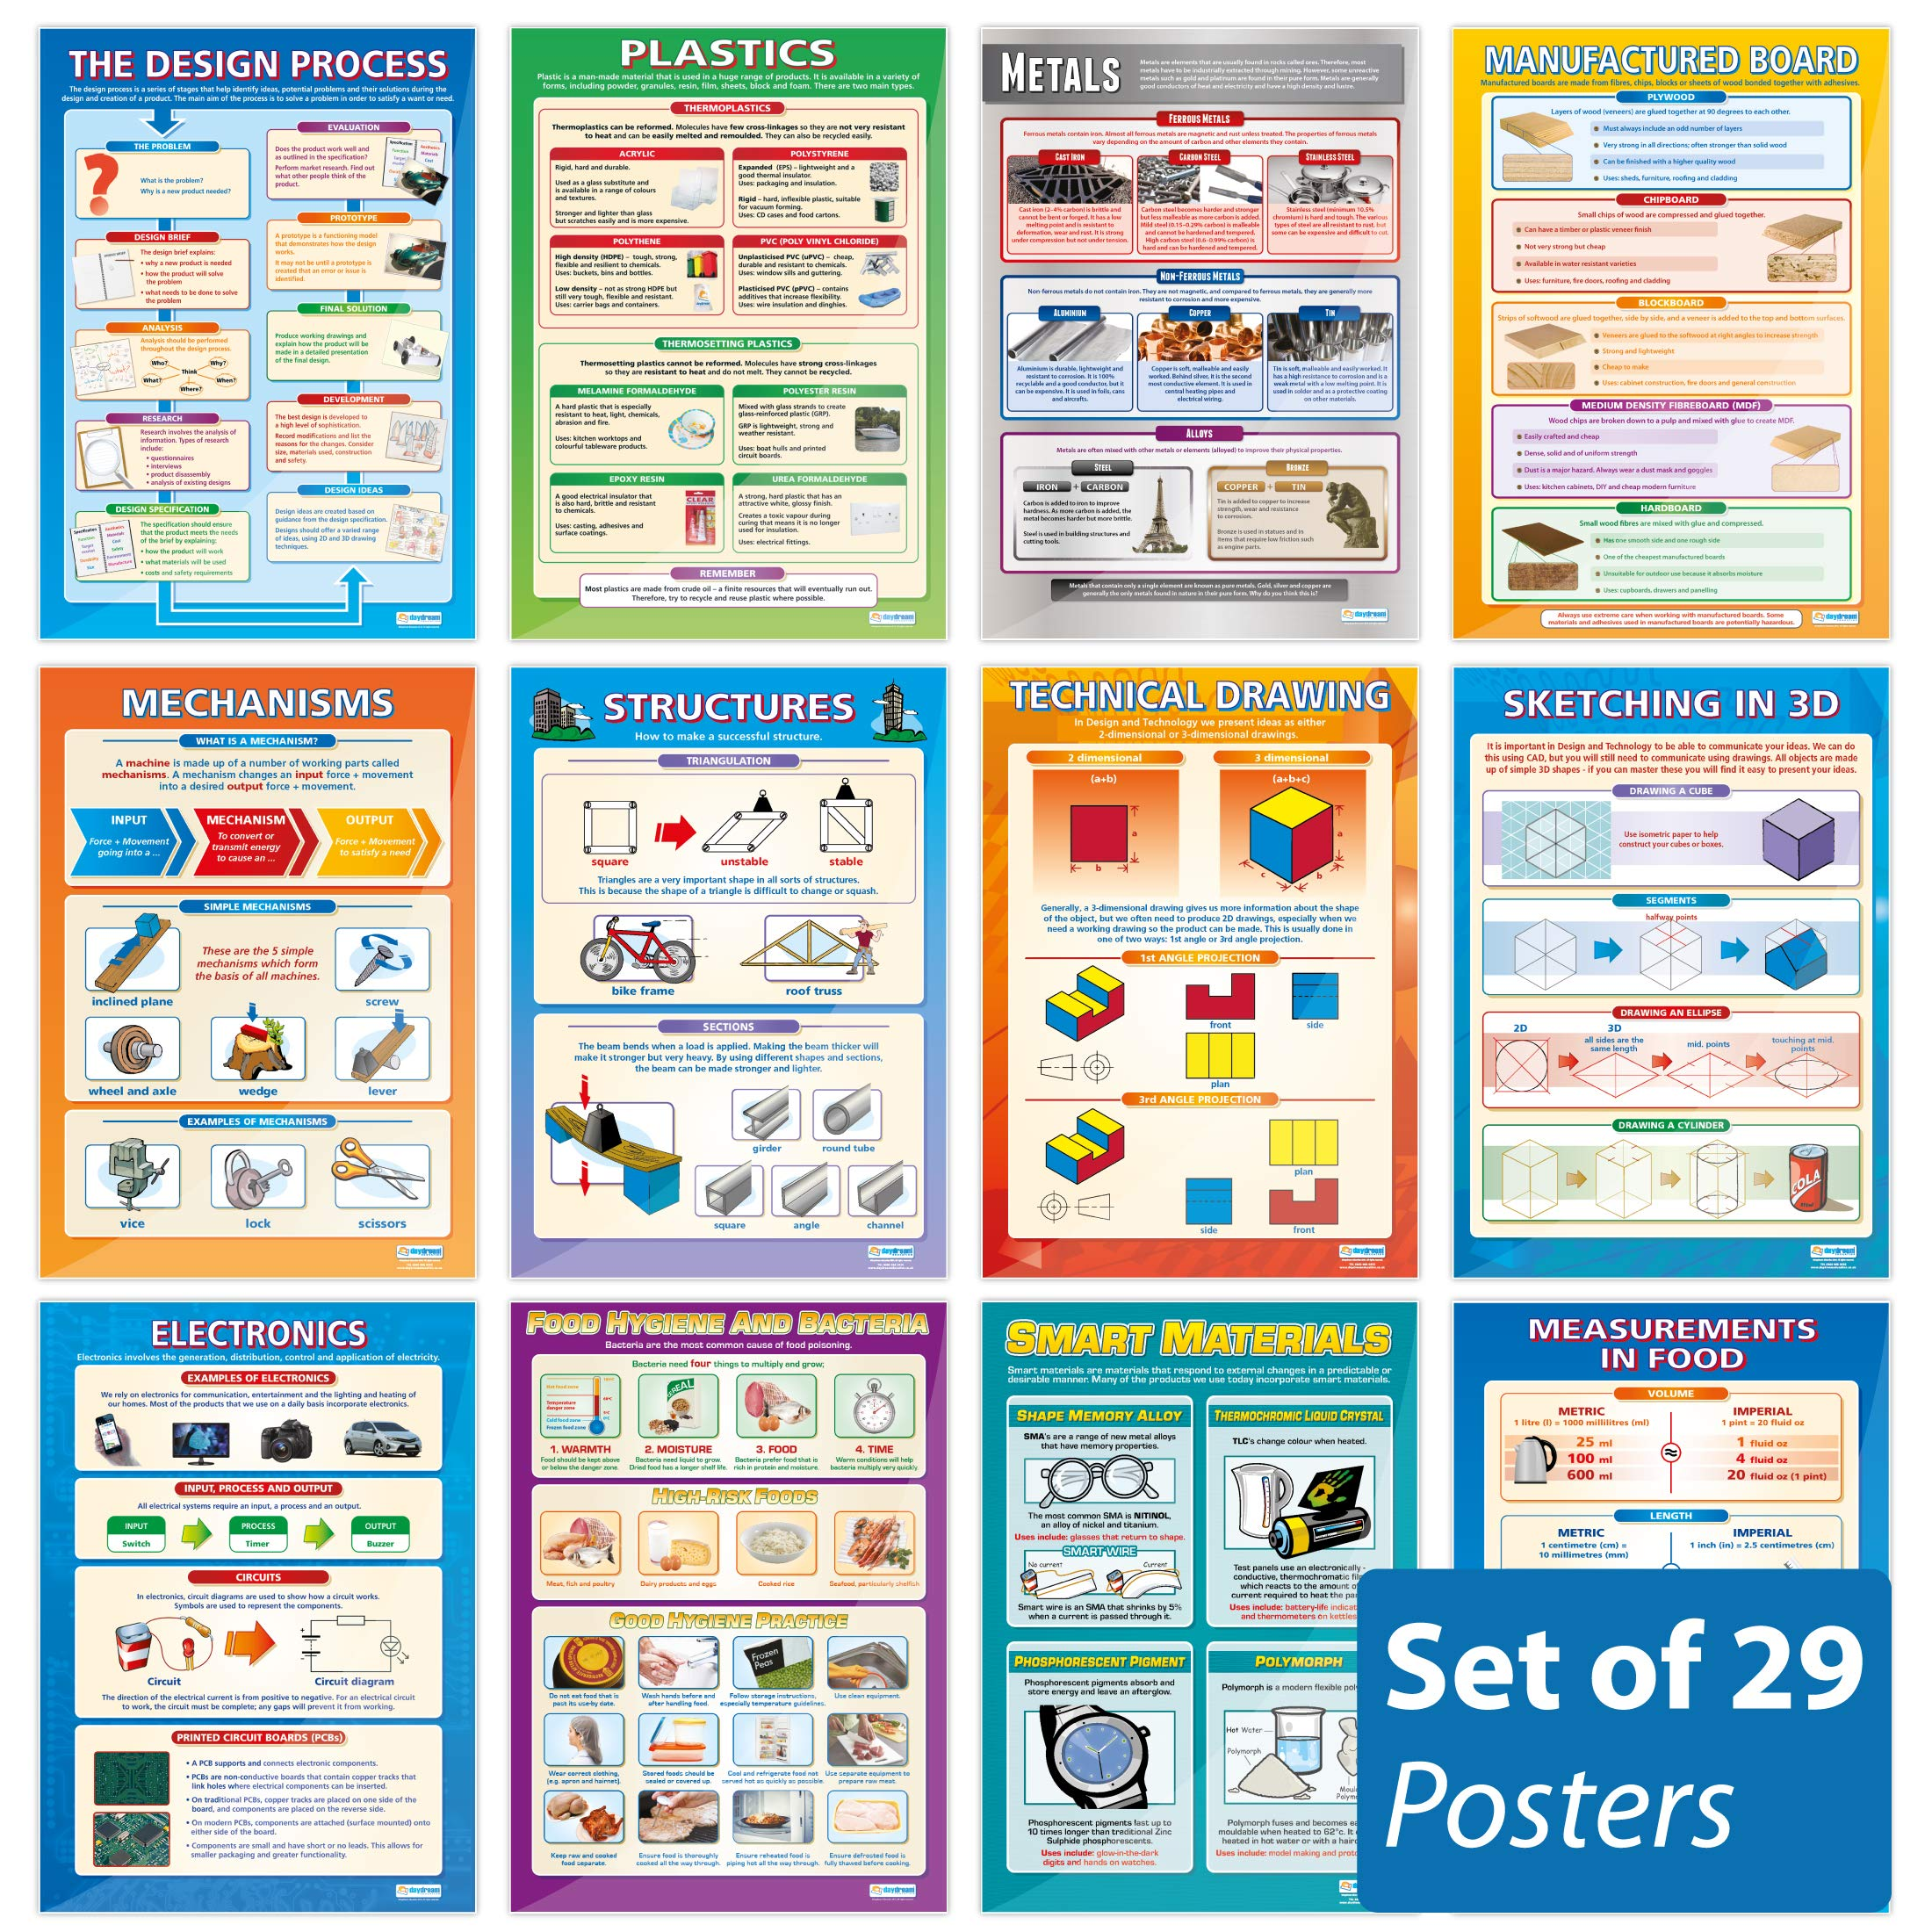 Design Technology Posters - Set of 29 | Design Technology Posters | Gloss Paper Measuring 33'' x 23.5'' | Design and Technology Classroom Posters | Education Charts by Daydream Education